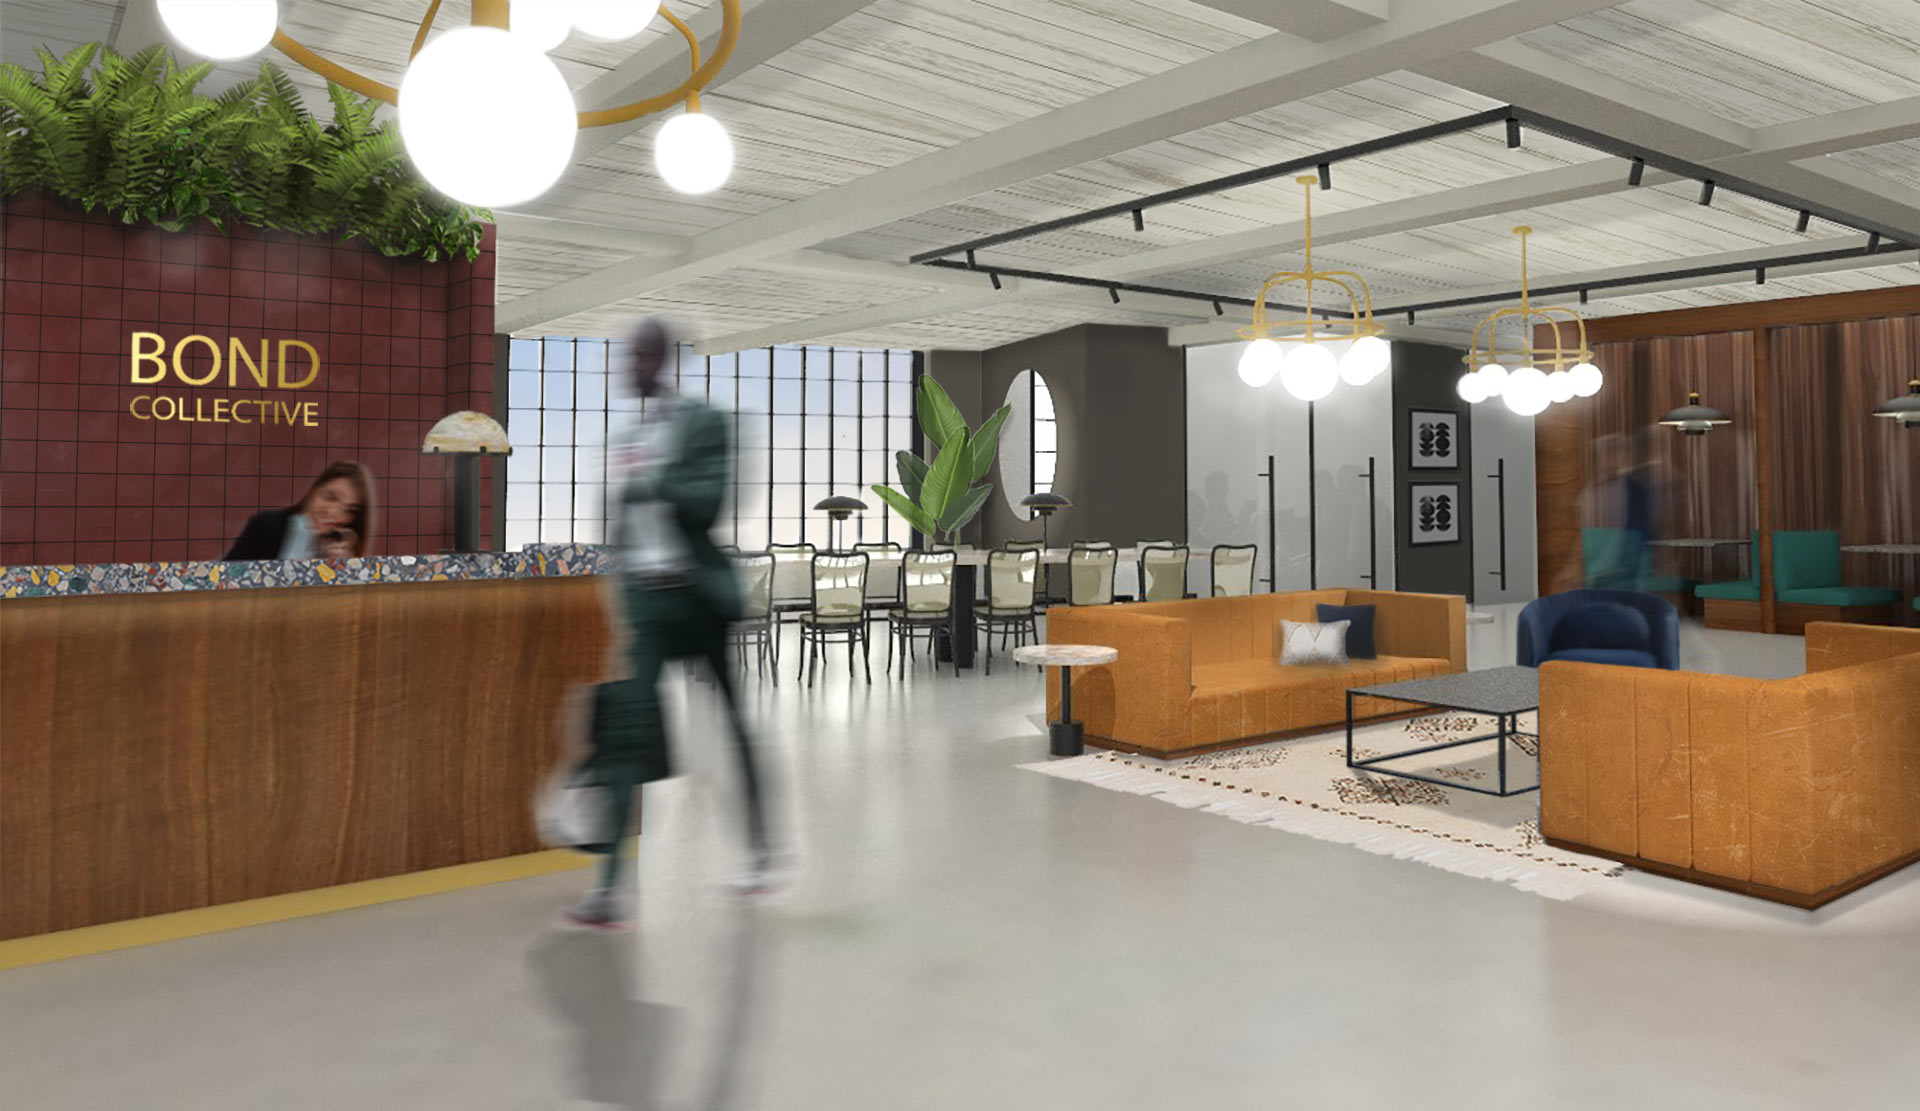 Receptionist and entrepreneur at one of Bond Collective's collaborative workspaces